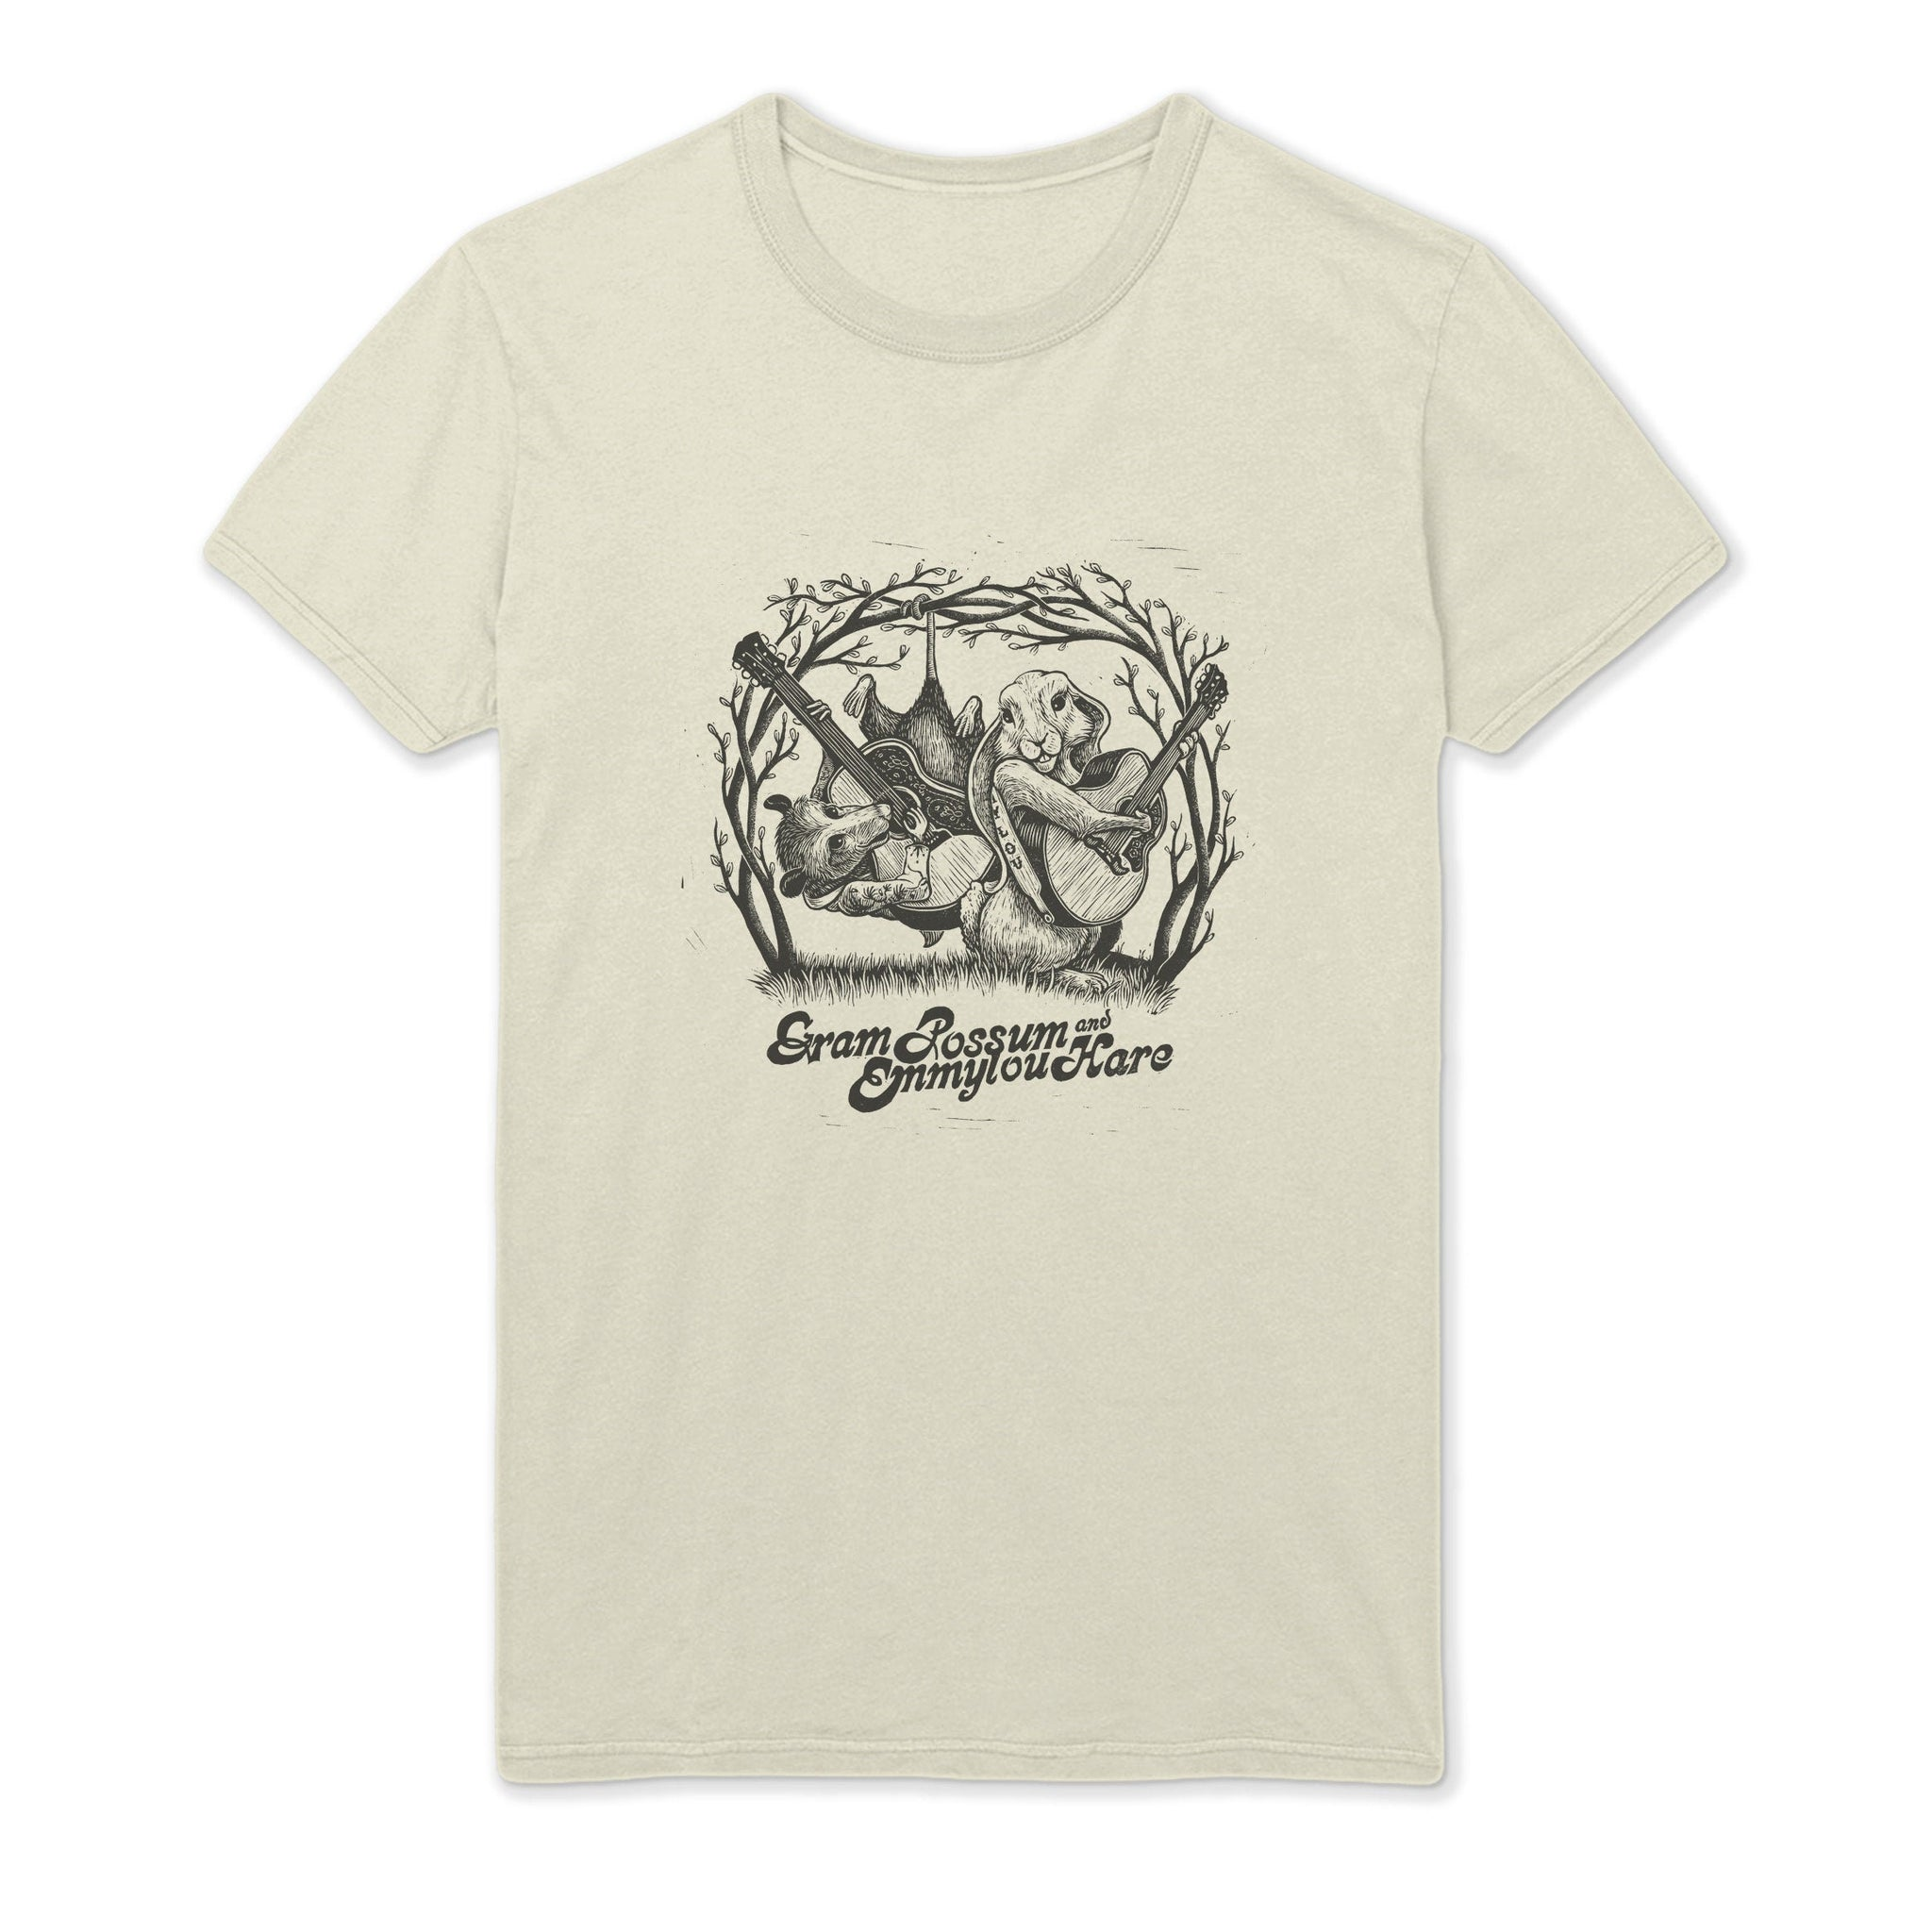 Gram Possum and Emmylou Hare Shirt